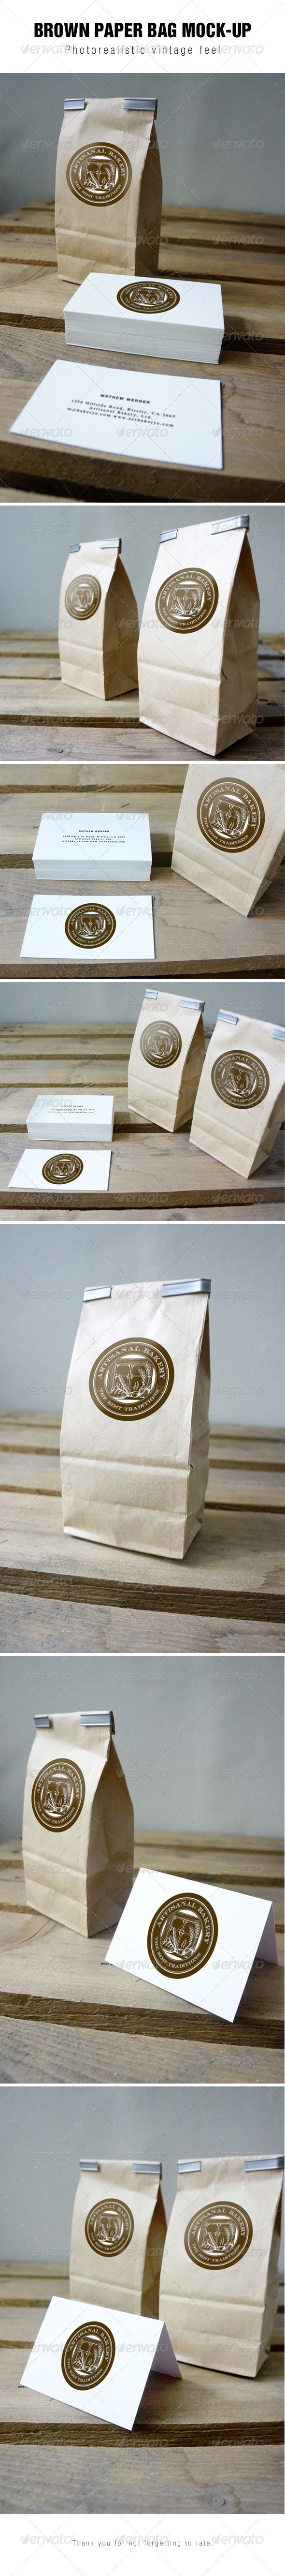 GraphicRiver Brown Paper Bag Mockup 7470834